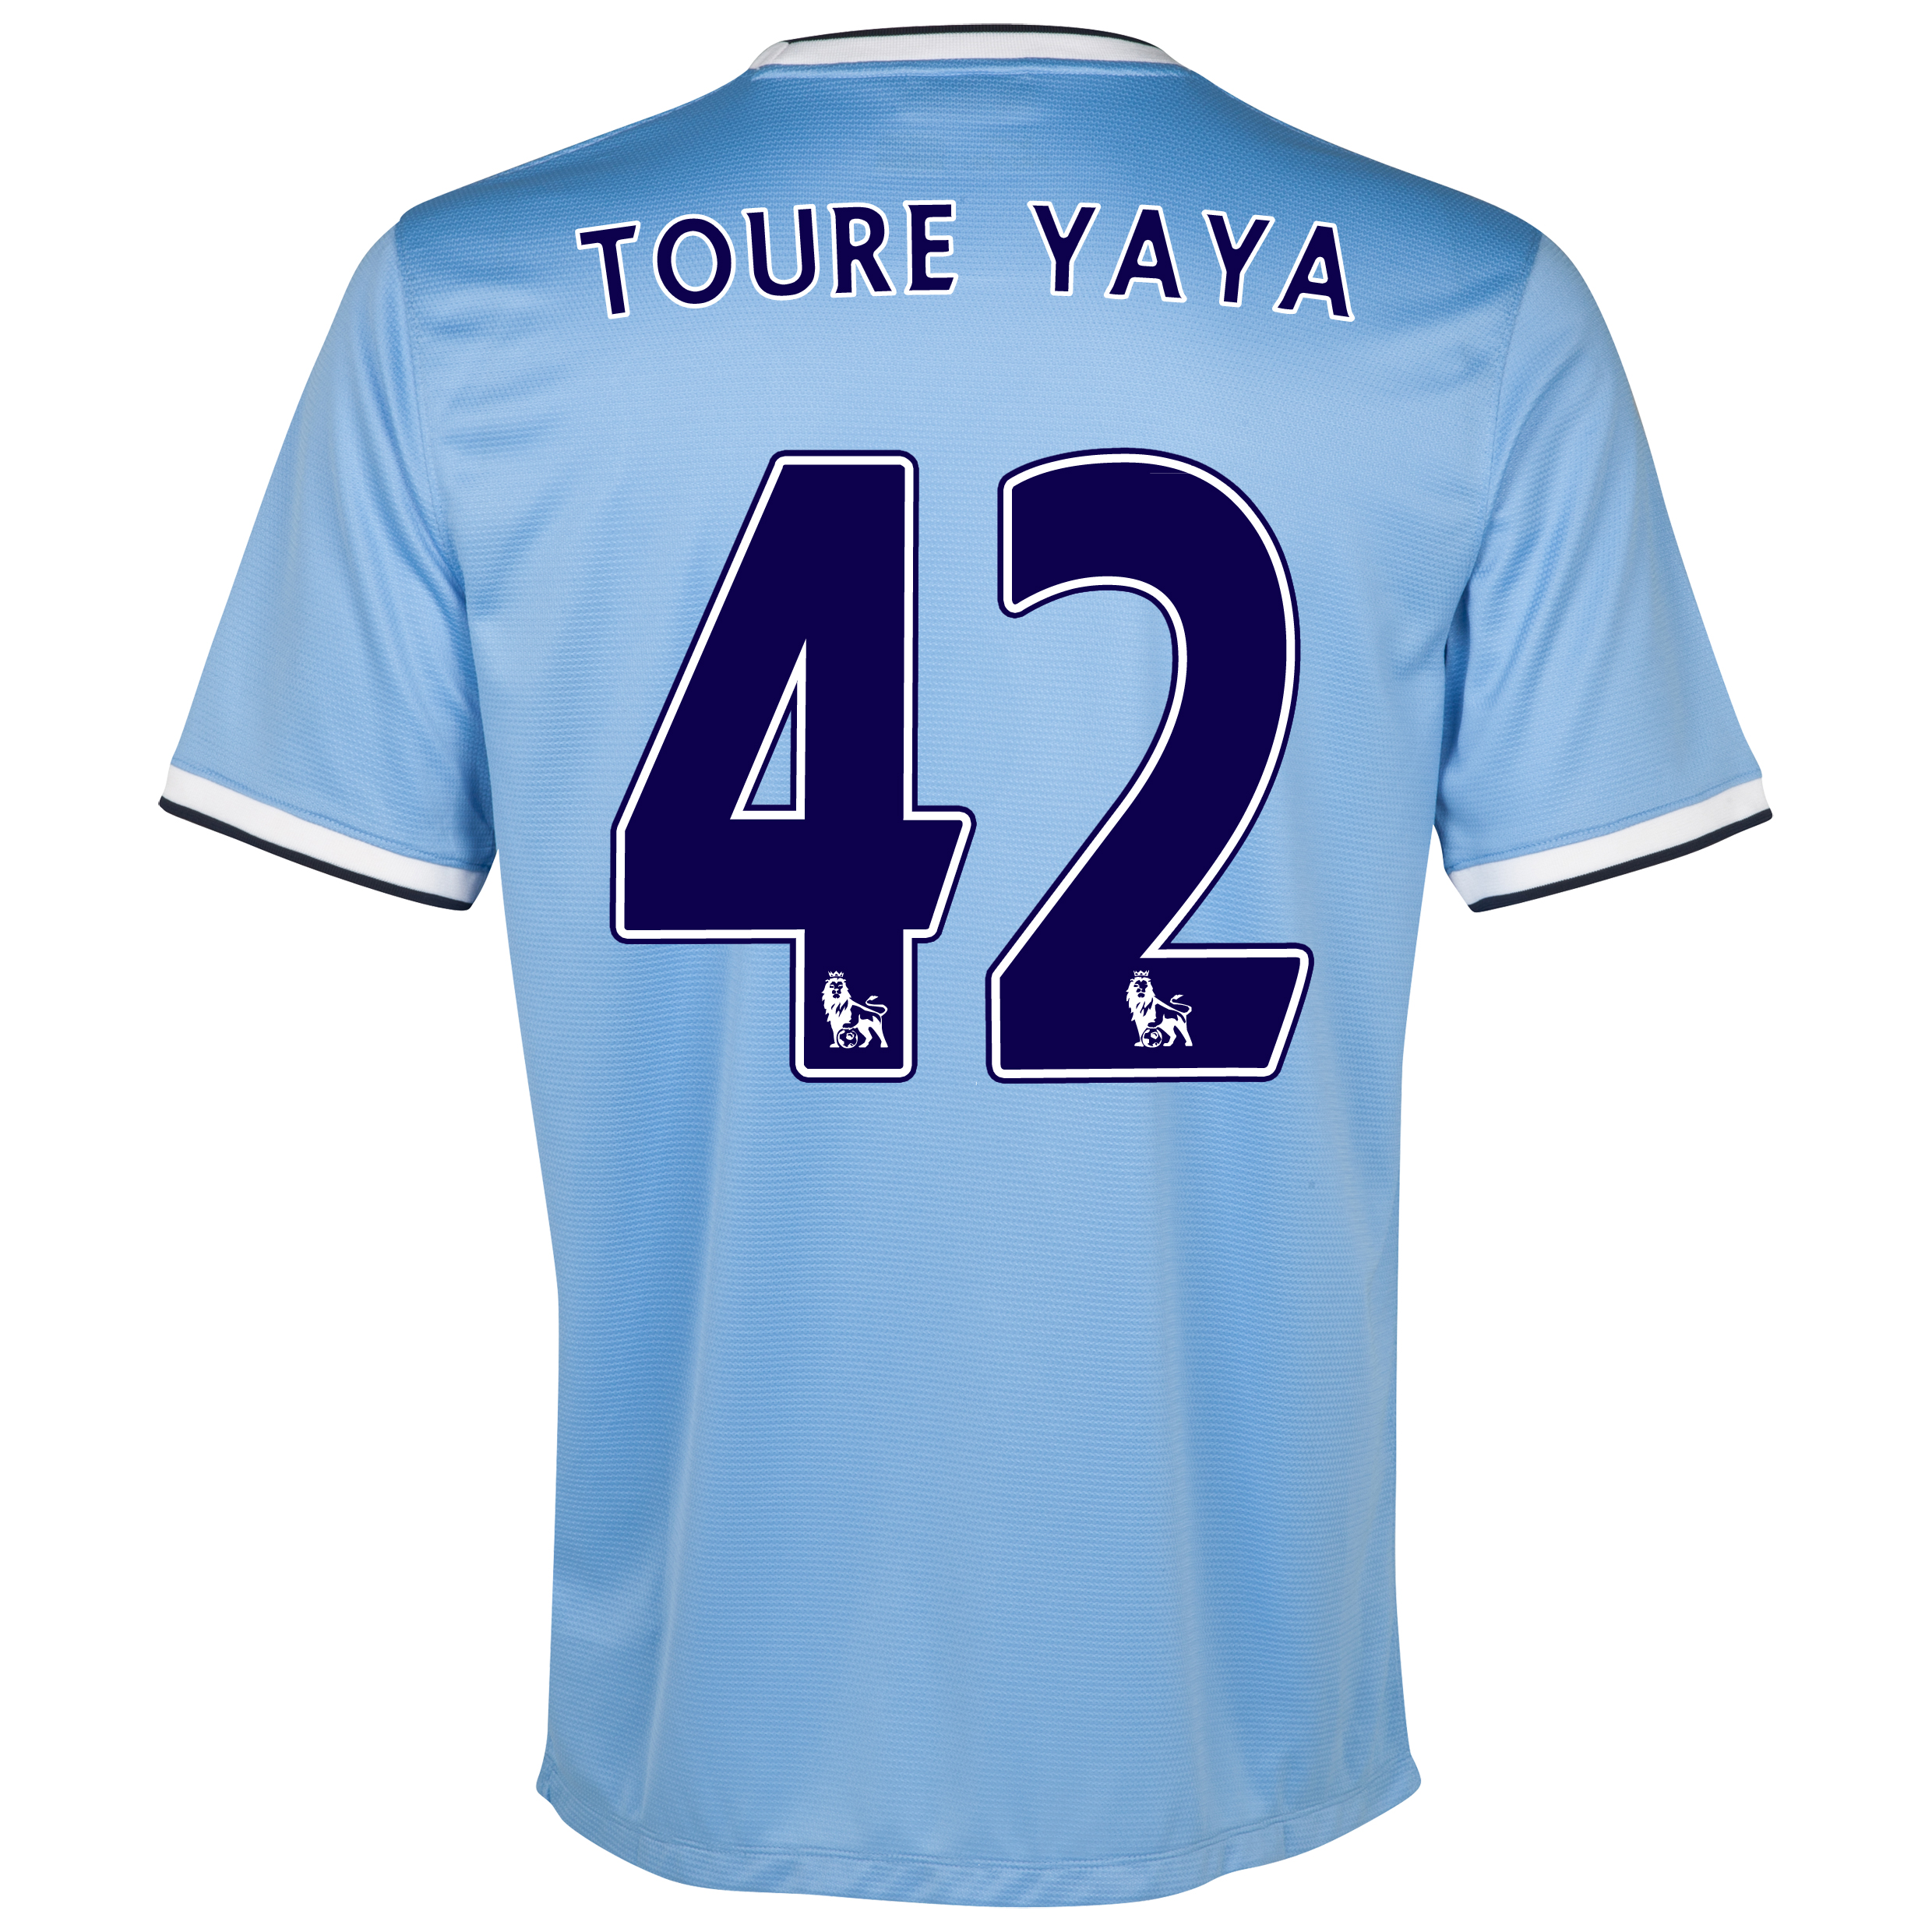 Manchester City Home Shirt 2013/14 - Womens with Toure Yaya 42 printing